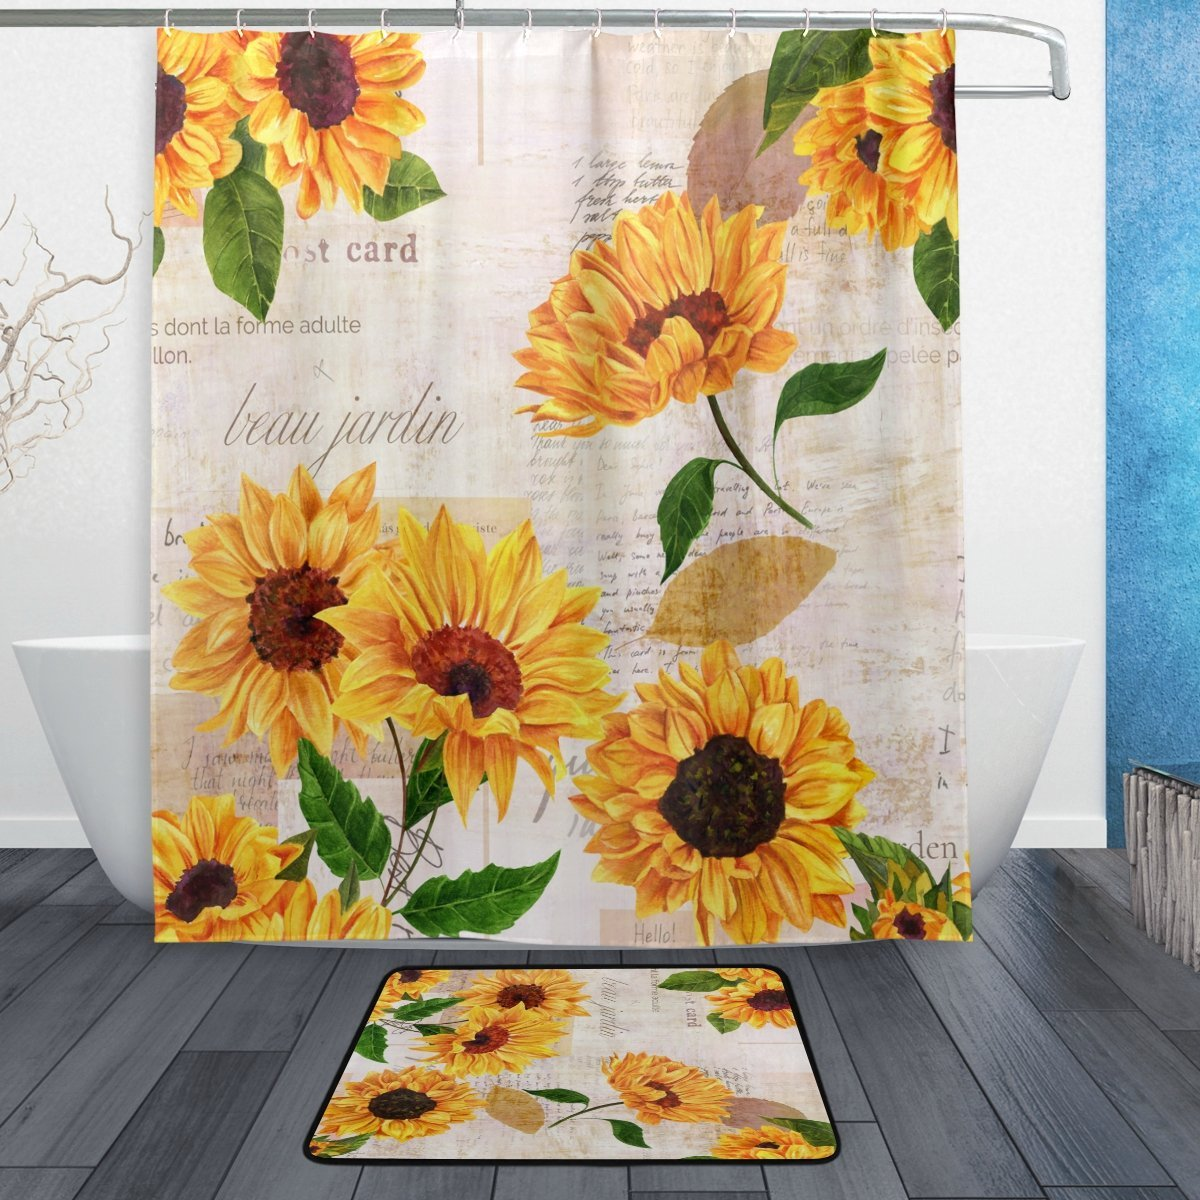 Us 15 11 37 Off Summer Sunflower Shower Curtain And Mat Set Vintage Retro Floral Waterproof Fabric Bathroom Curtain In Shower Curtains From Home